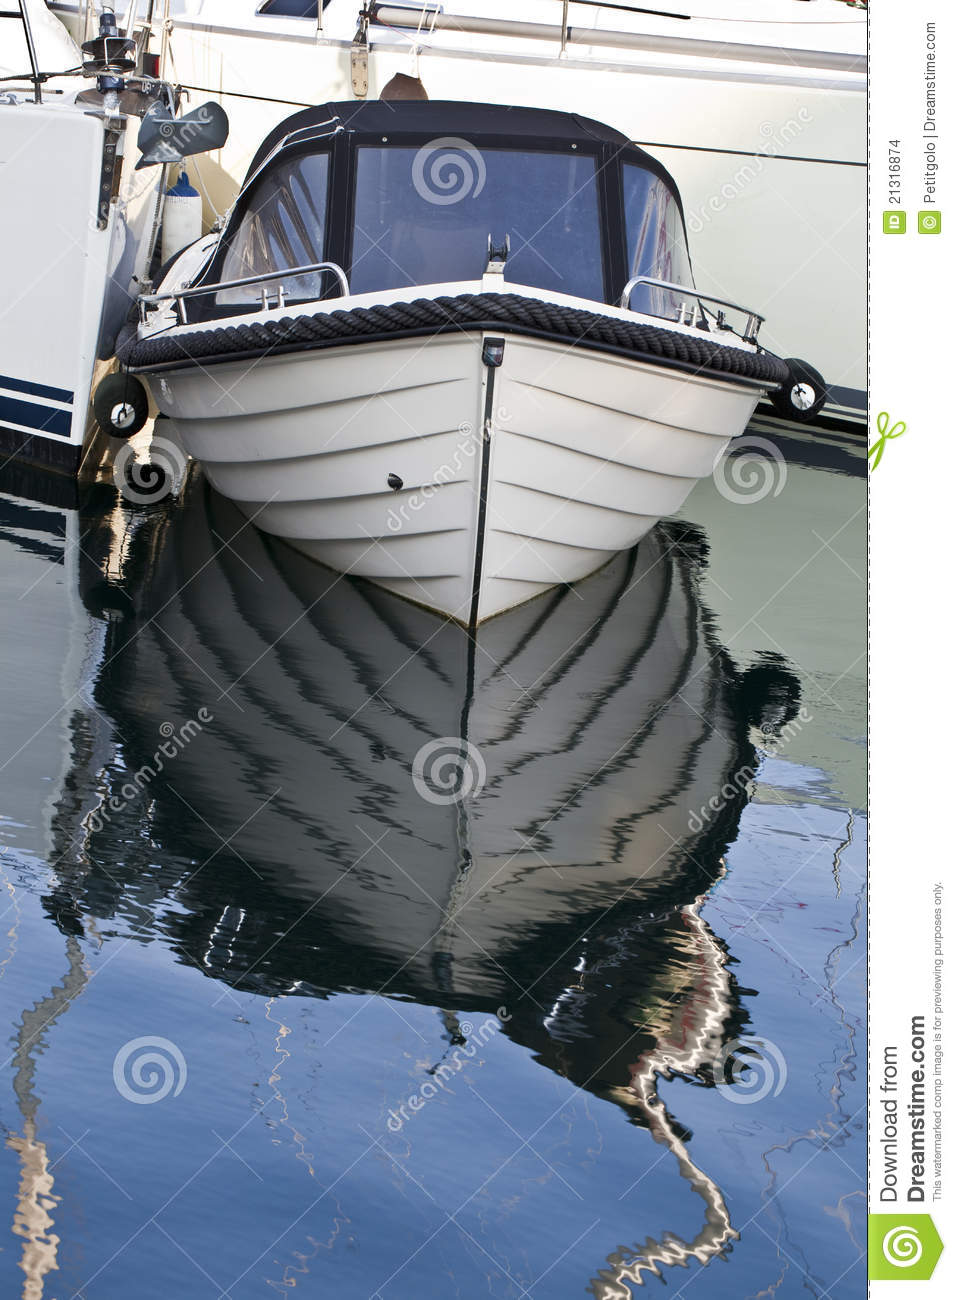 Pictures Of Clinker Brick And Lava Rock Houses: Clinker-built Boat Stock Photo. Image Of Mooring, Fishing